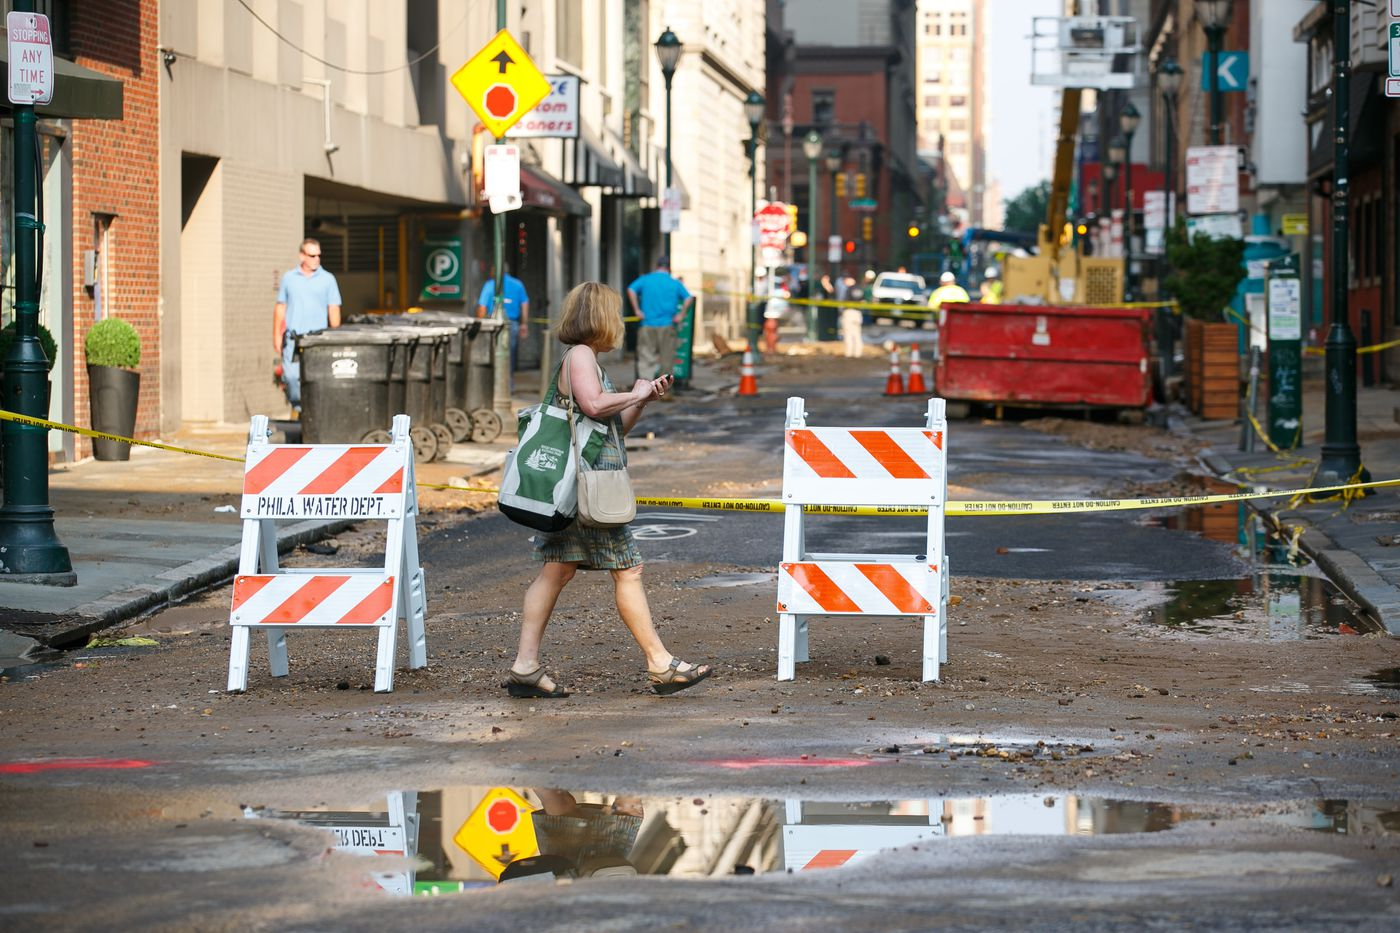 Center City water main break repairs 'ideally' to take 'until the end of this calendar year'